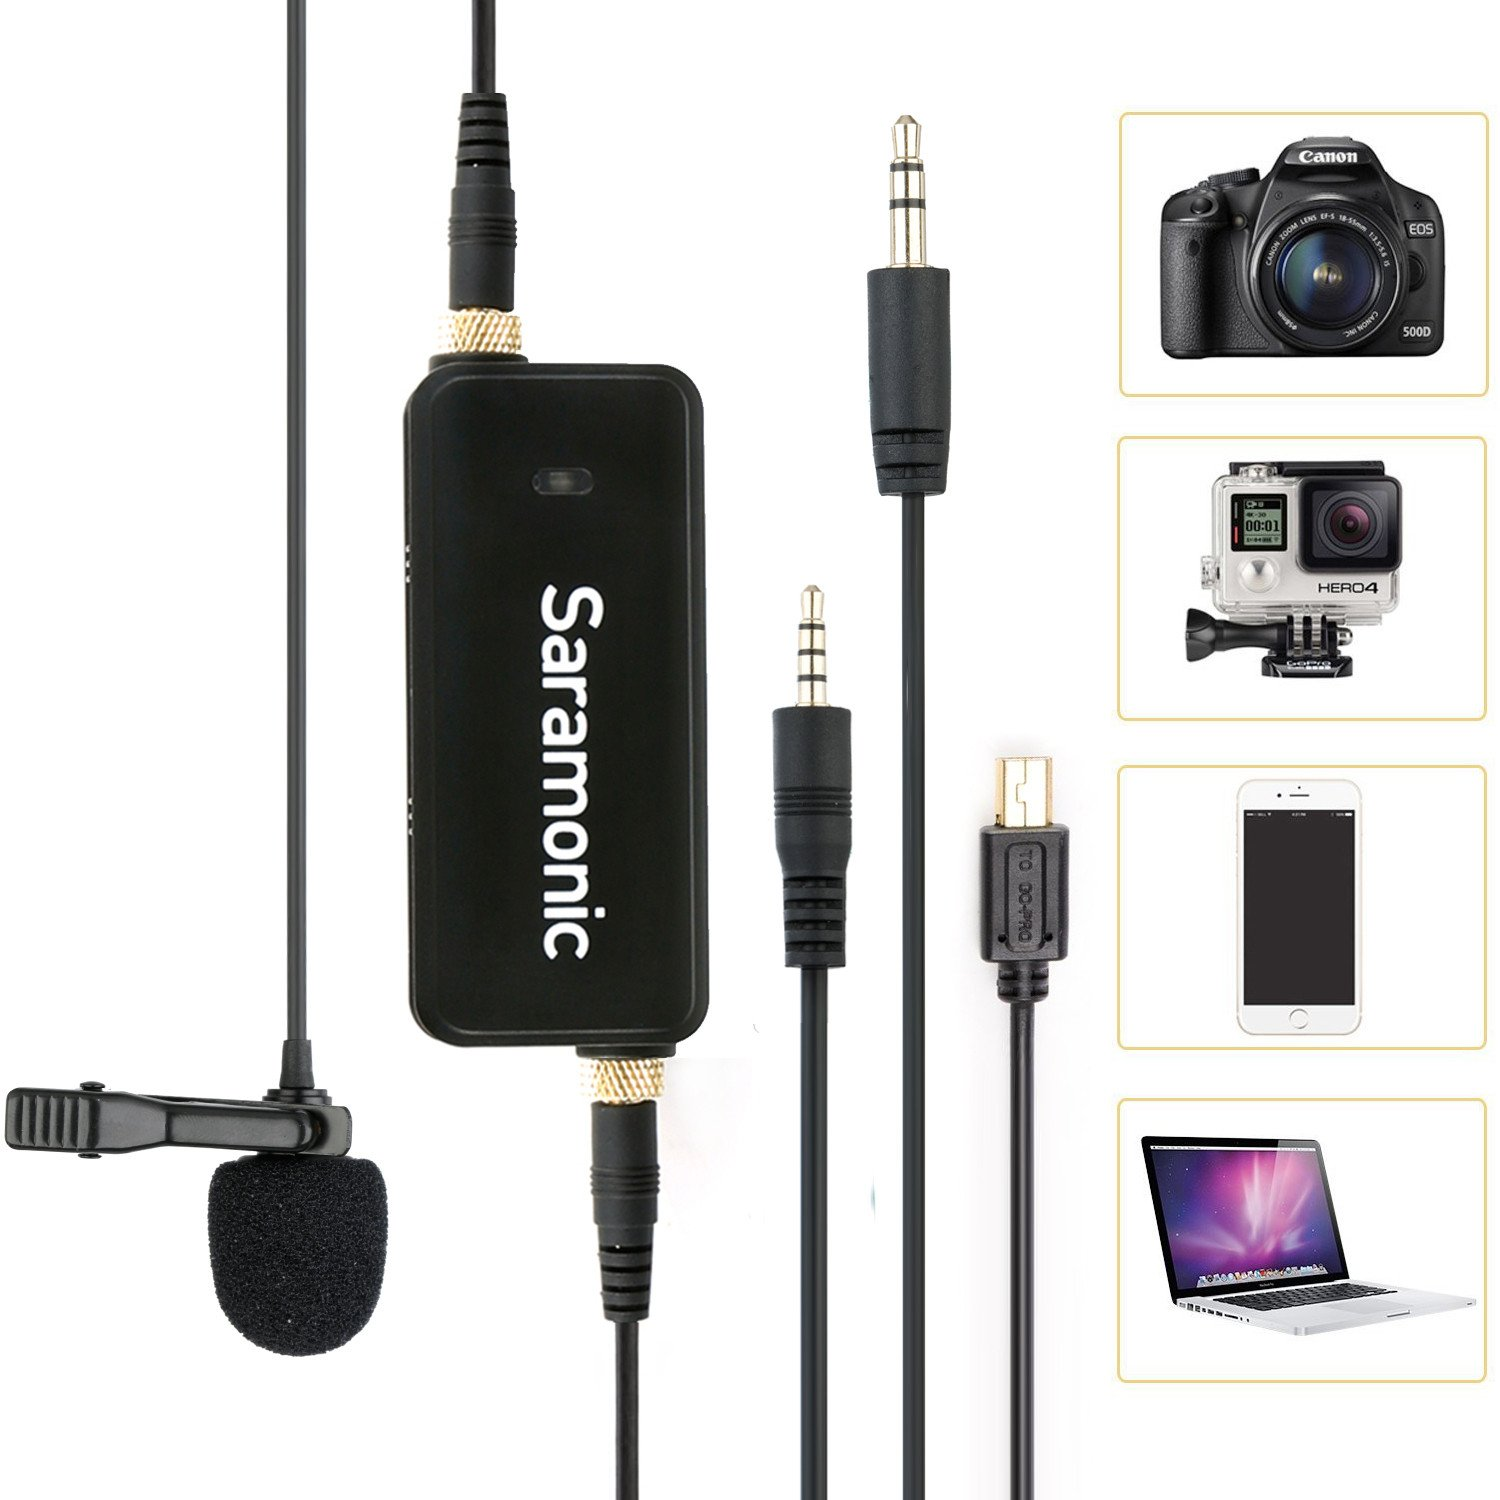 Saramonic LavMic Mono/Stereo 2-Channel Lavalier Microphone multifunctional interview Omnidirectional Condenser lapel mic for iphone,Ipad,Ipod,Android,DSLR,Sony Canon camera,Camcorder ,GoPro 3/3+/4